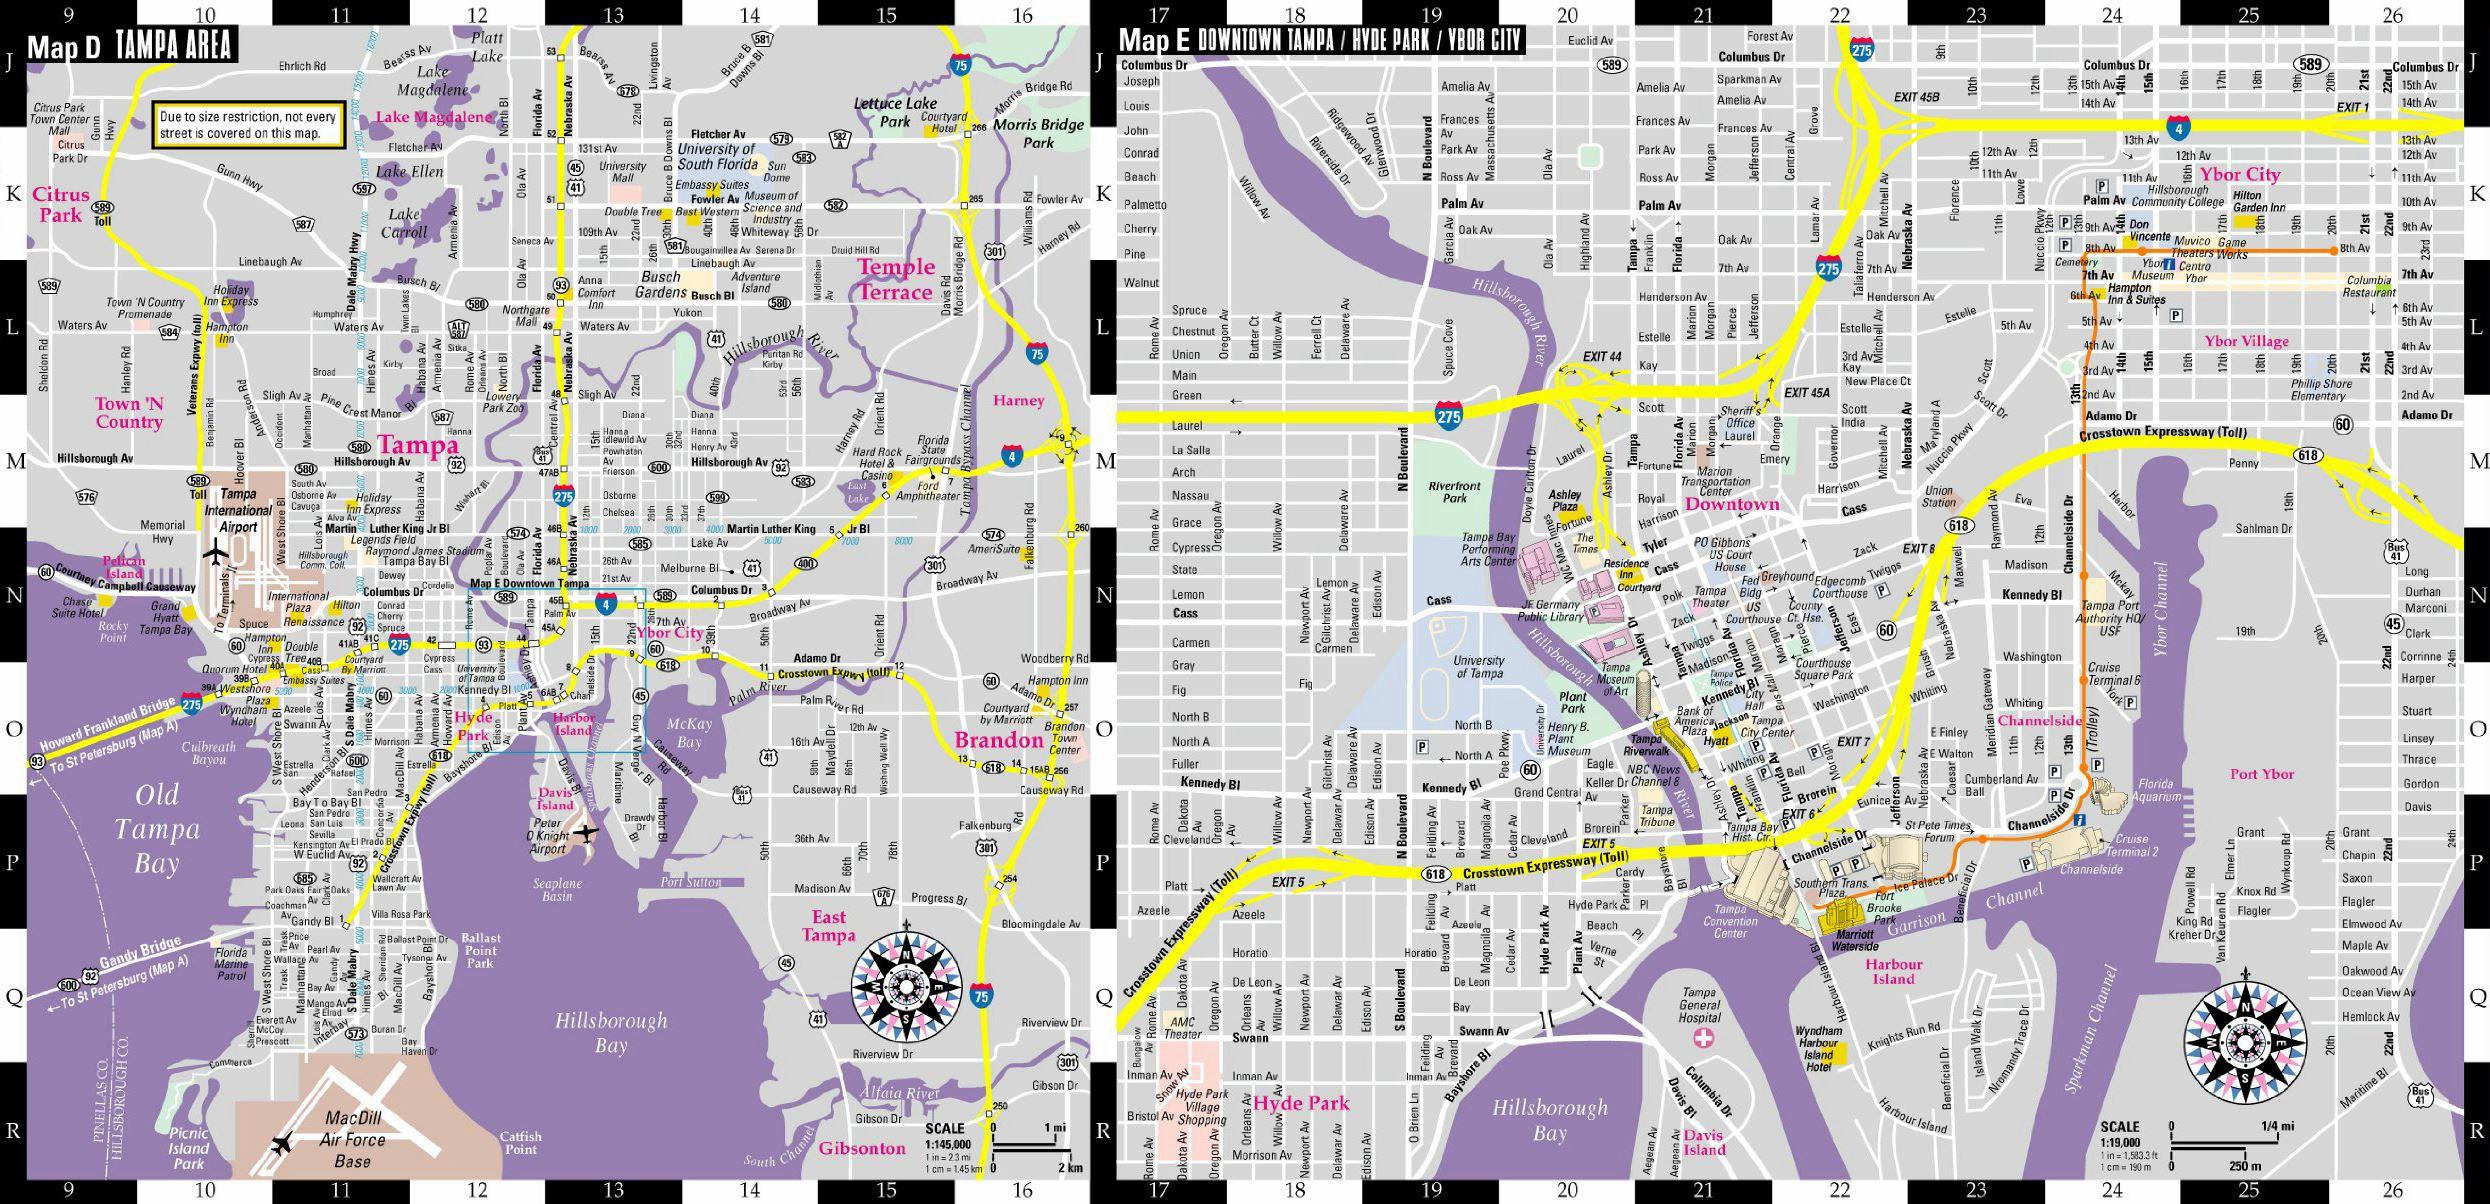 Large Tampa Maps for Free Download and Print | High-Resolution and on odessa city map, wellington city map, pasco city map, bradenton city map, lakeland city map, miami city map, tampa map, jacksonville city map, sarasota city map, apalachicola city map, sun city center map, york city map, jefferson county street map, okeechobee county zoning map, st. petersburg city map, dunedin city map, melbourne city map, palm harbor city map, st. petersburg pier map, winter haven city map,